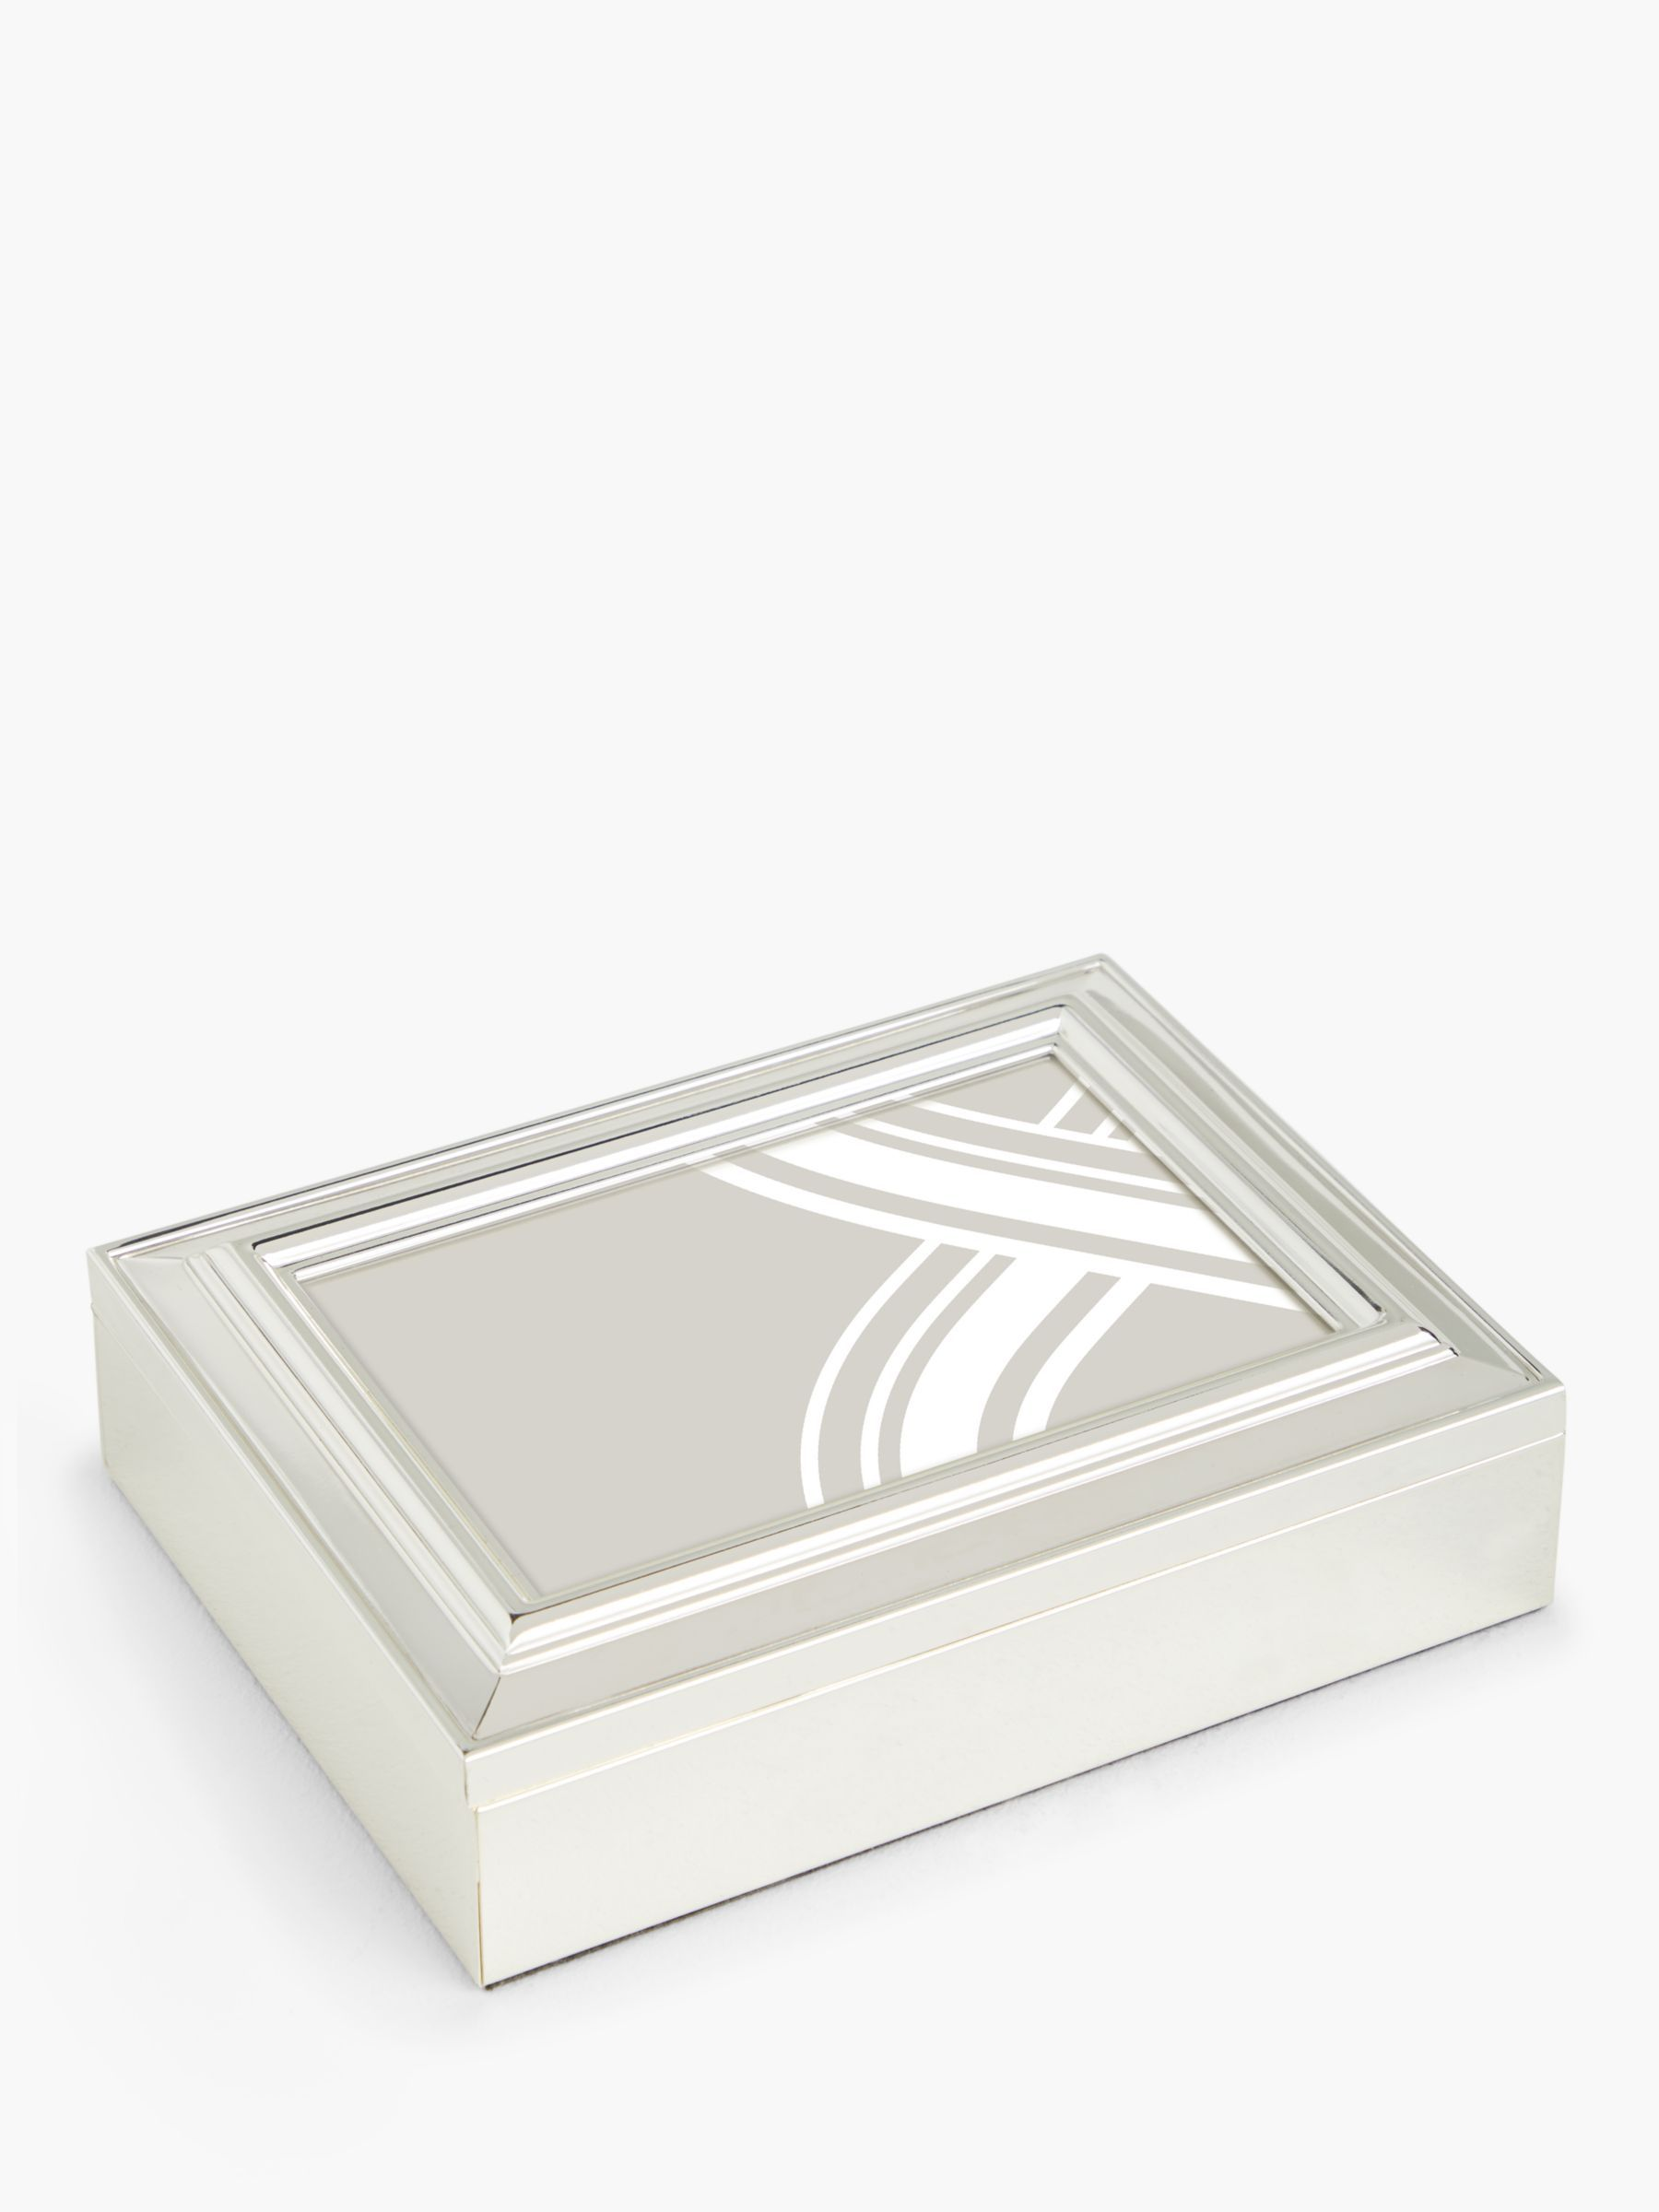 John Lewis Partners Constance Photo Frame Keepsake Box 4 X 6 10 X 15cm Silver Plated Keepsake Boxes John Lewis Frame